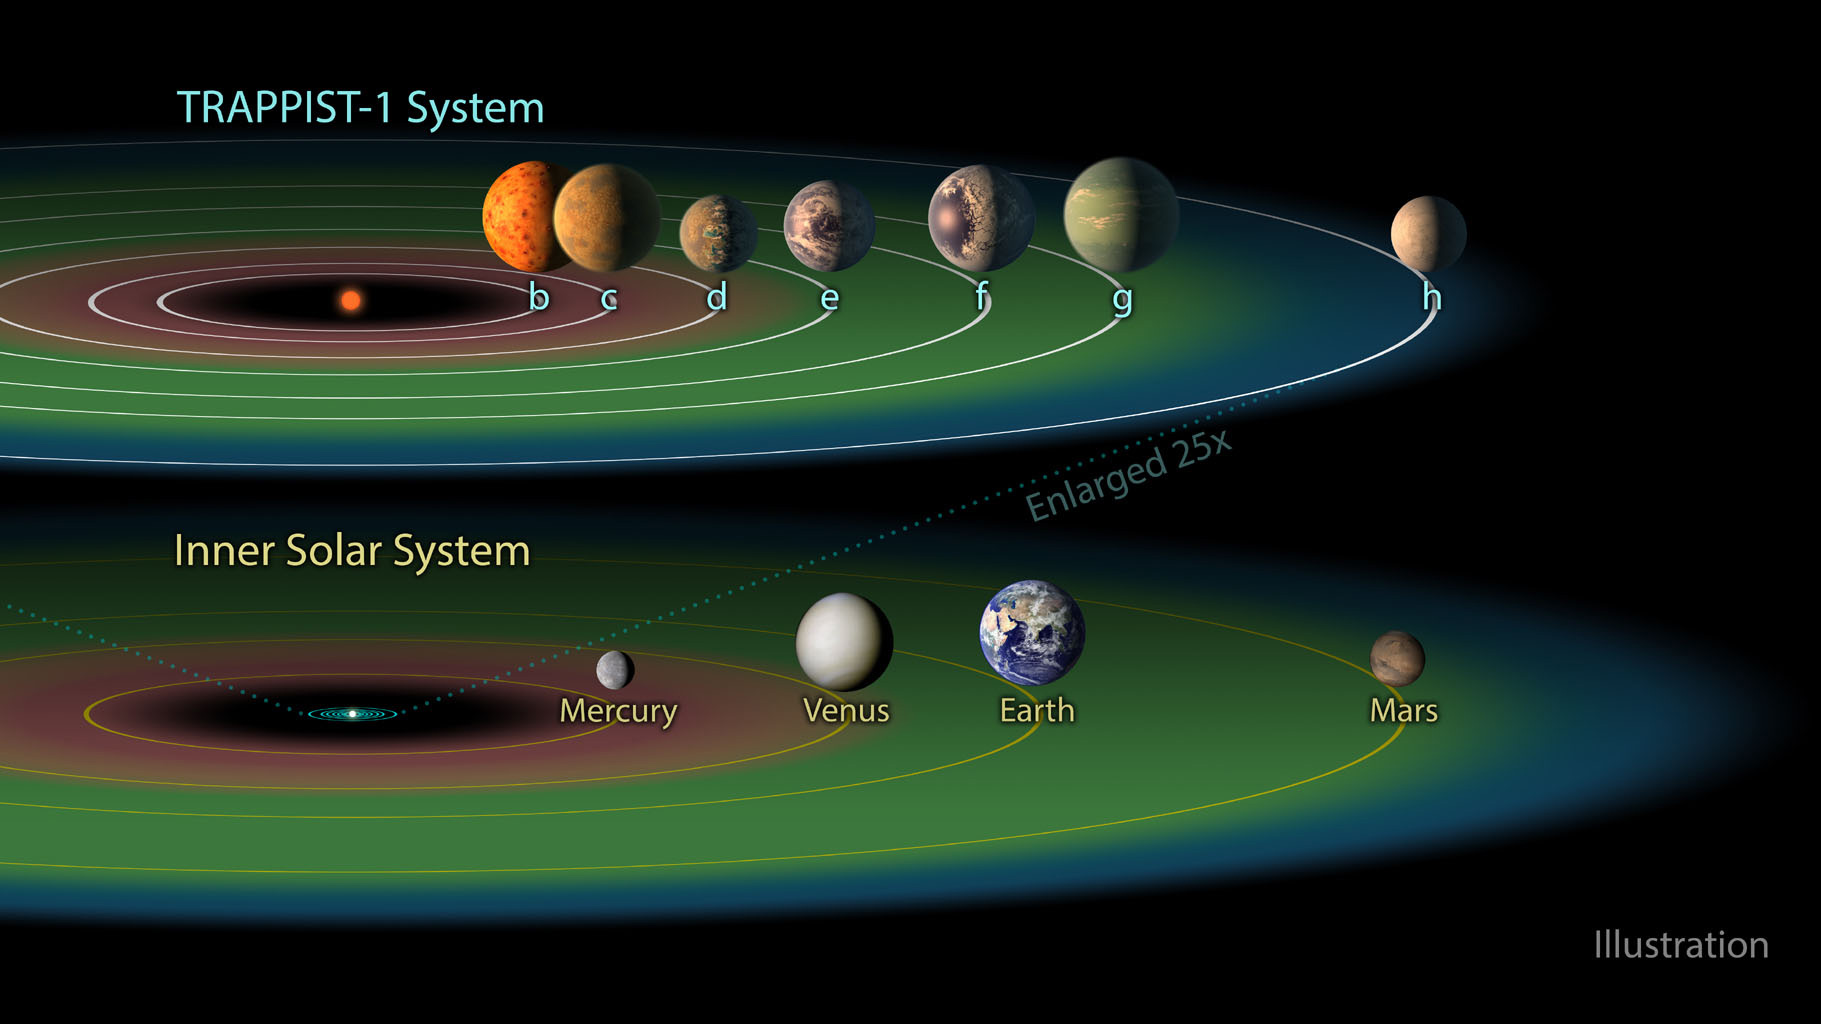 An illustration of the TRAPPIST-1 planetary system compared to the Inner Solar System.